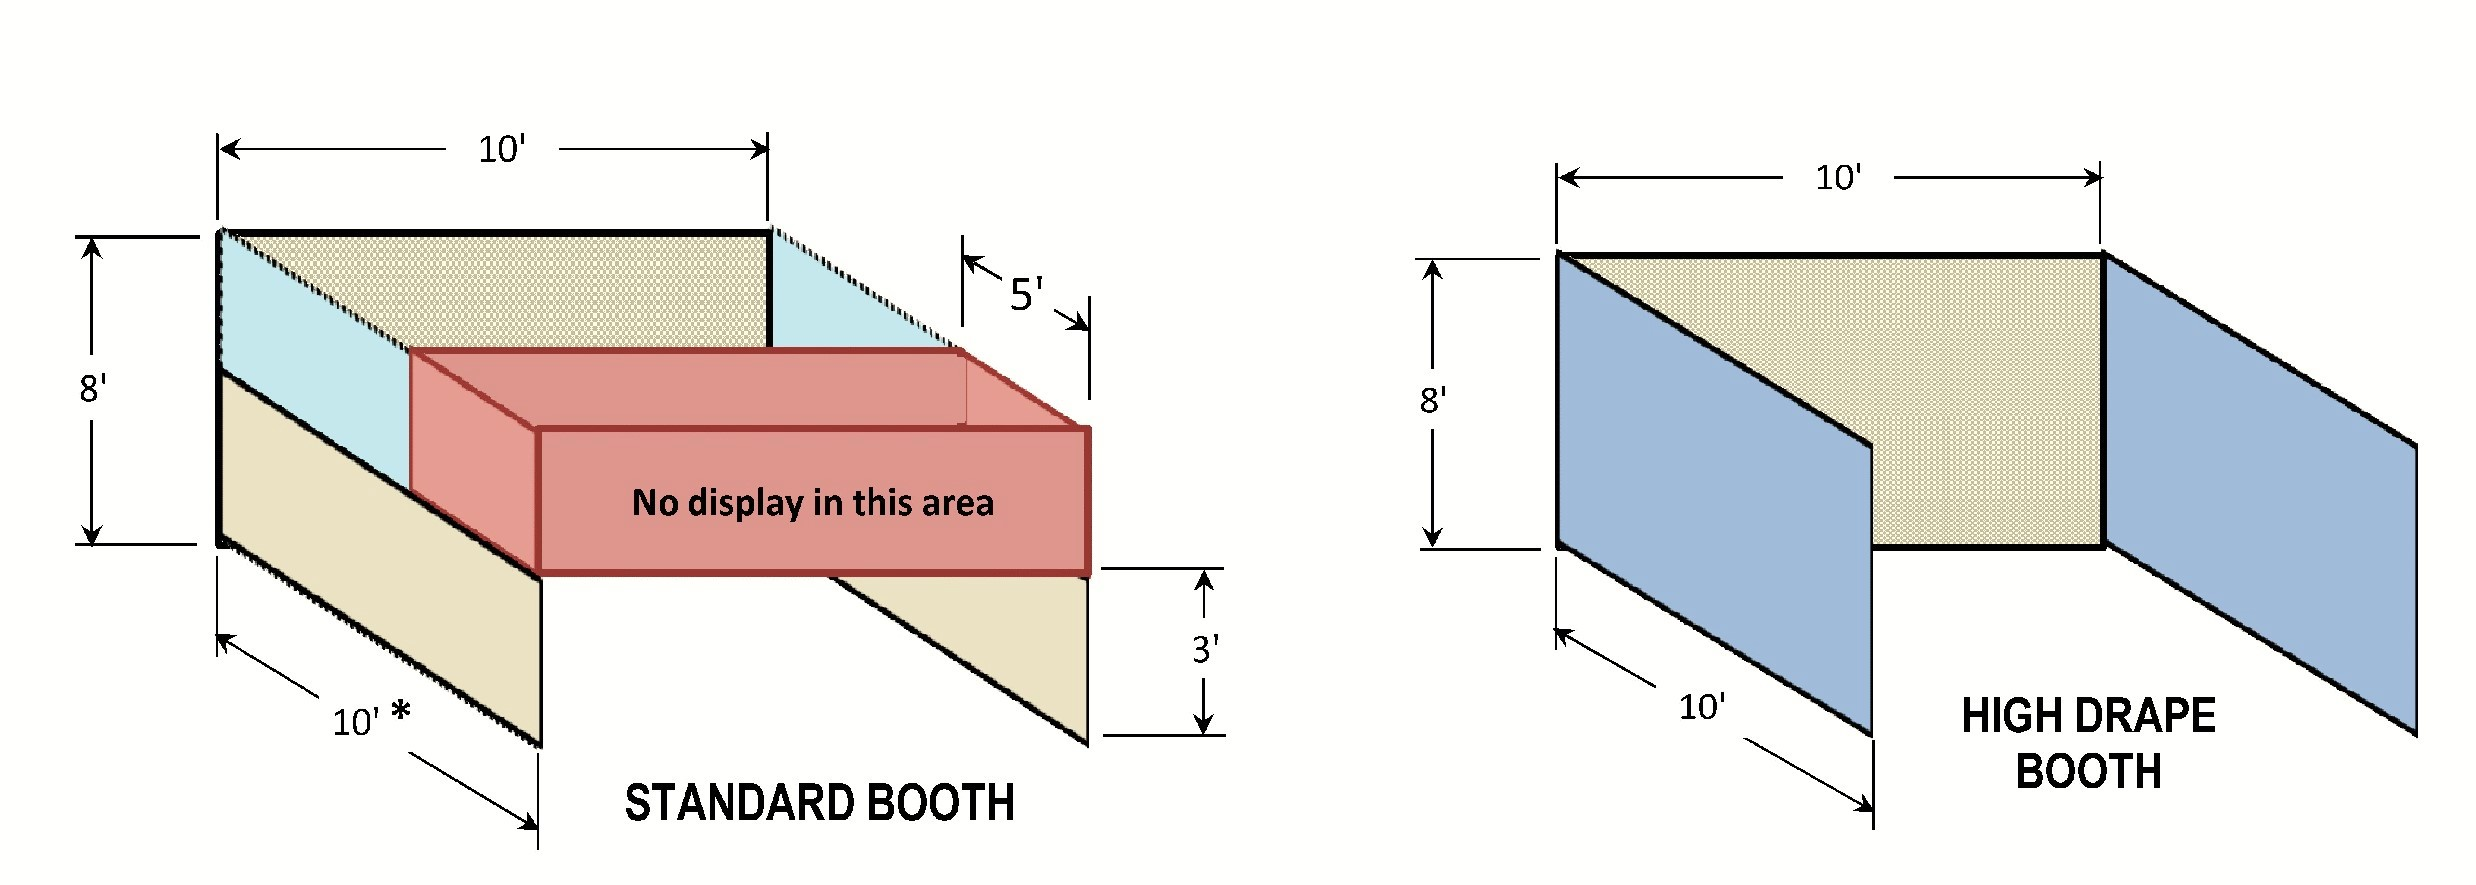 diagram of booth display